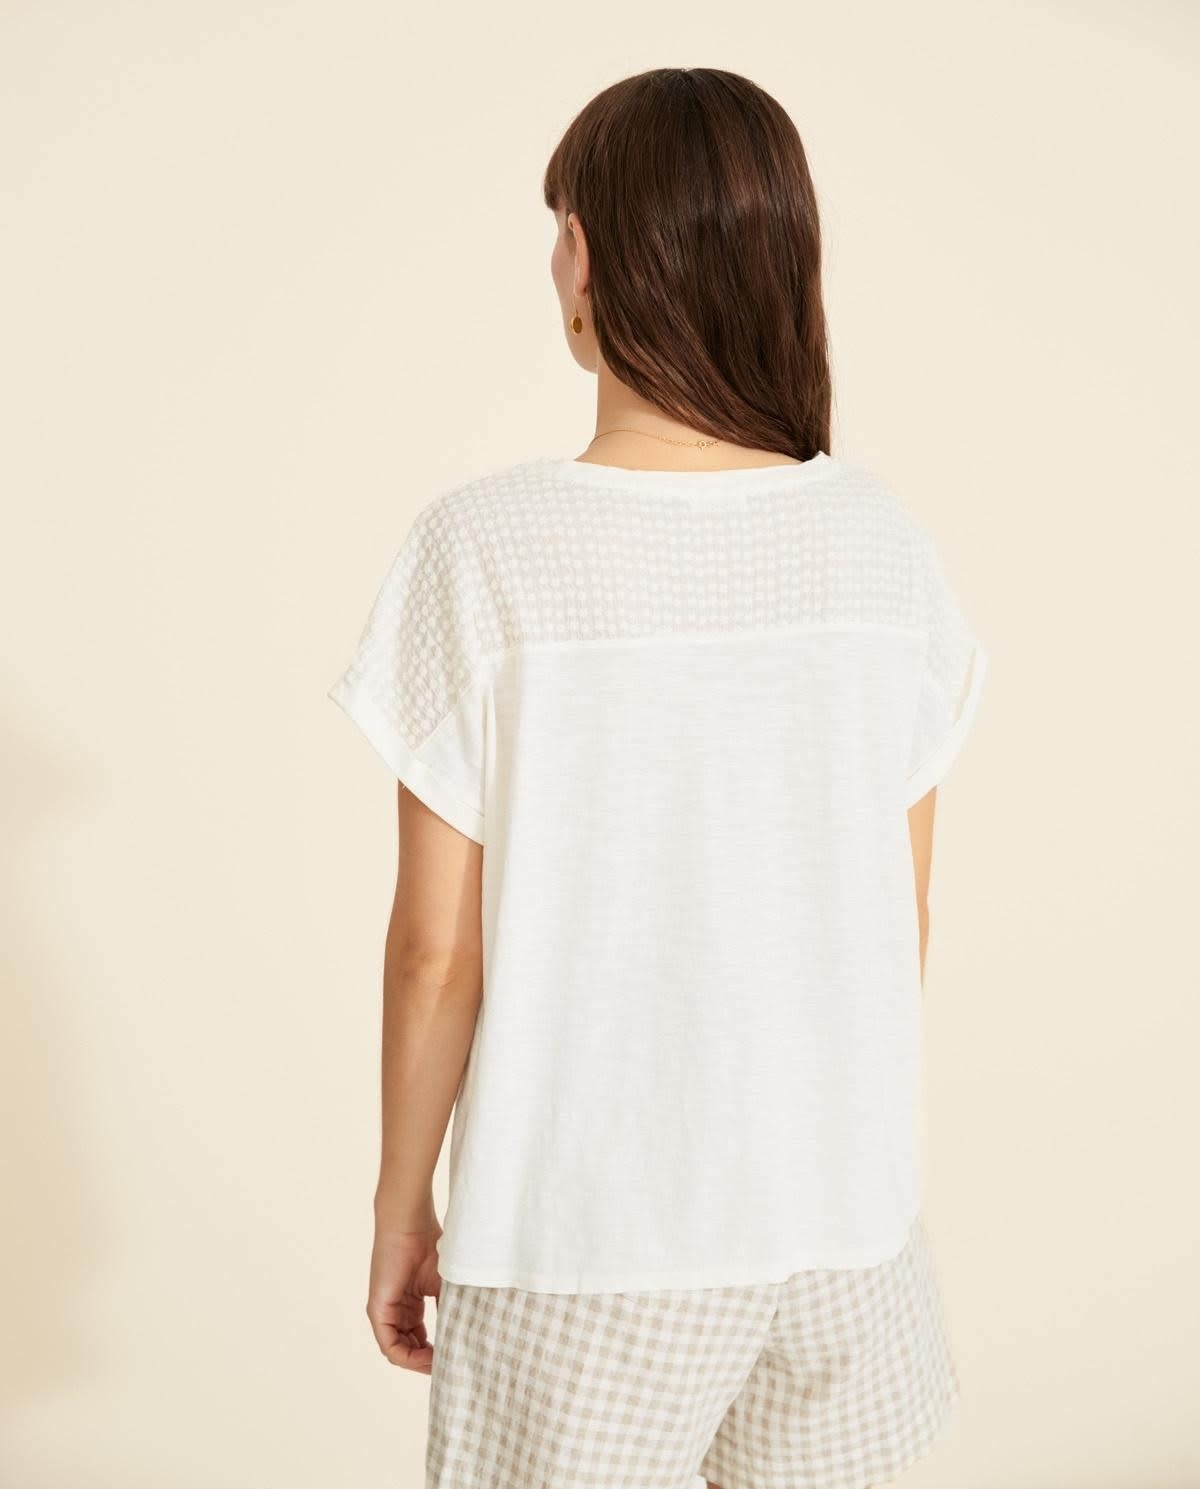 Yerse T-shirt with embroidered shoulders